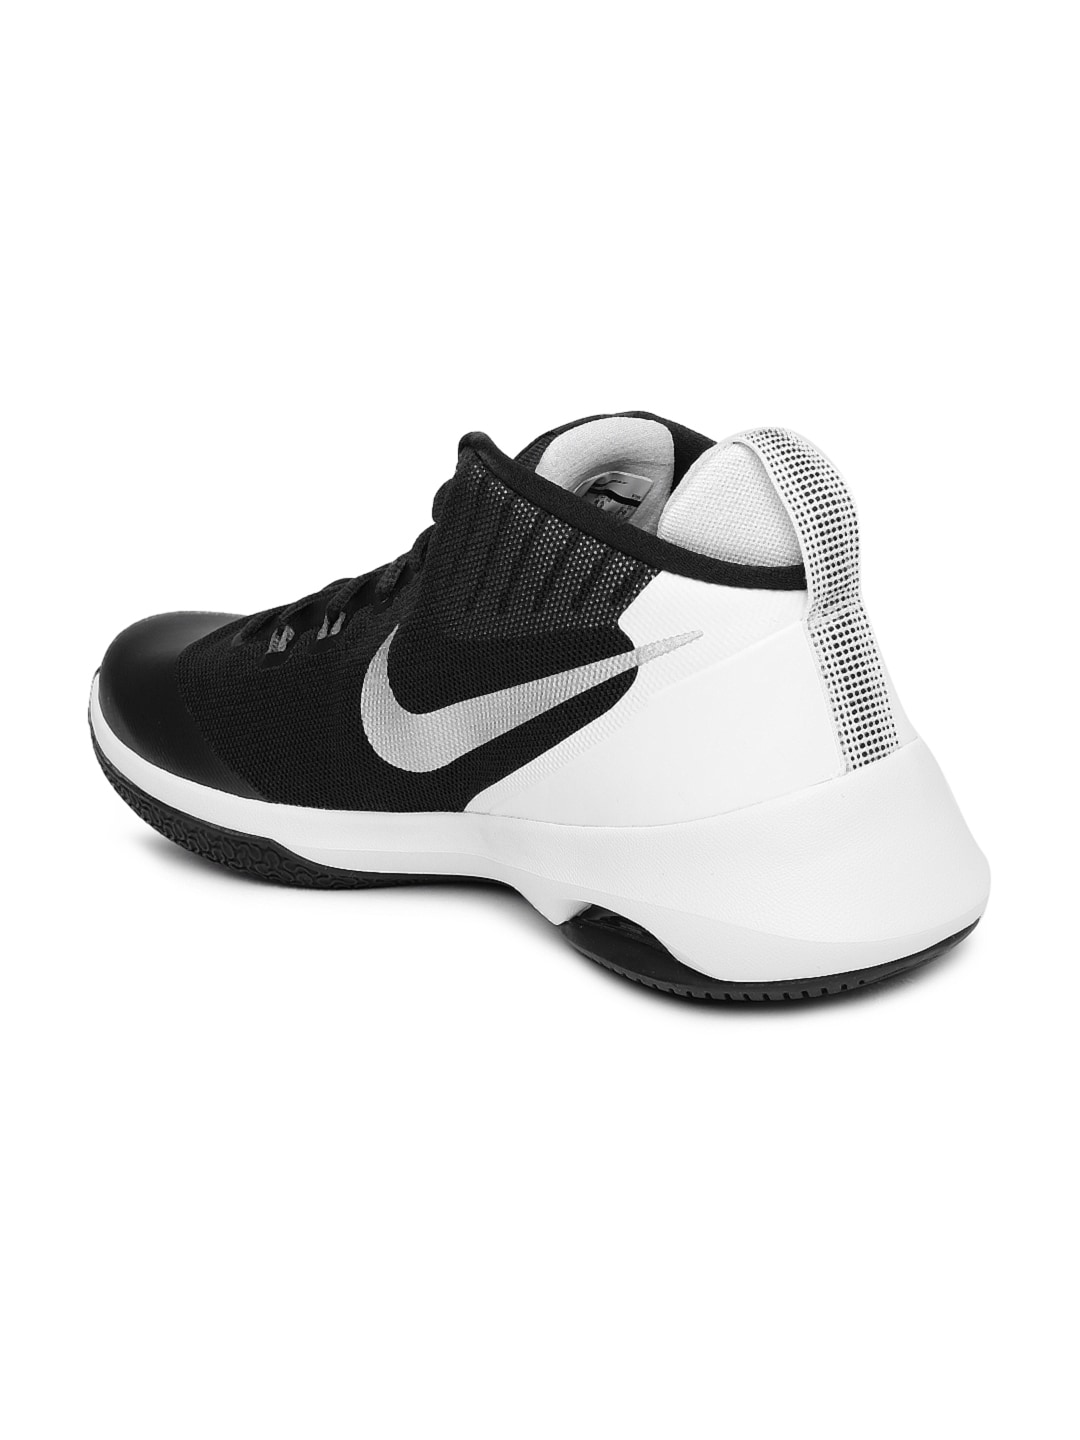 Best Site To Buy Basketball Shoes In India